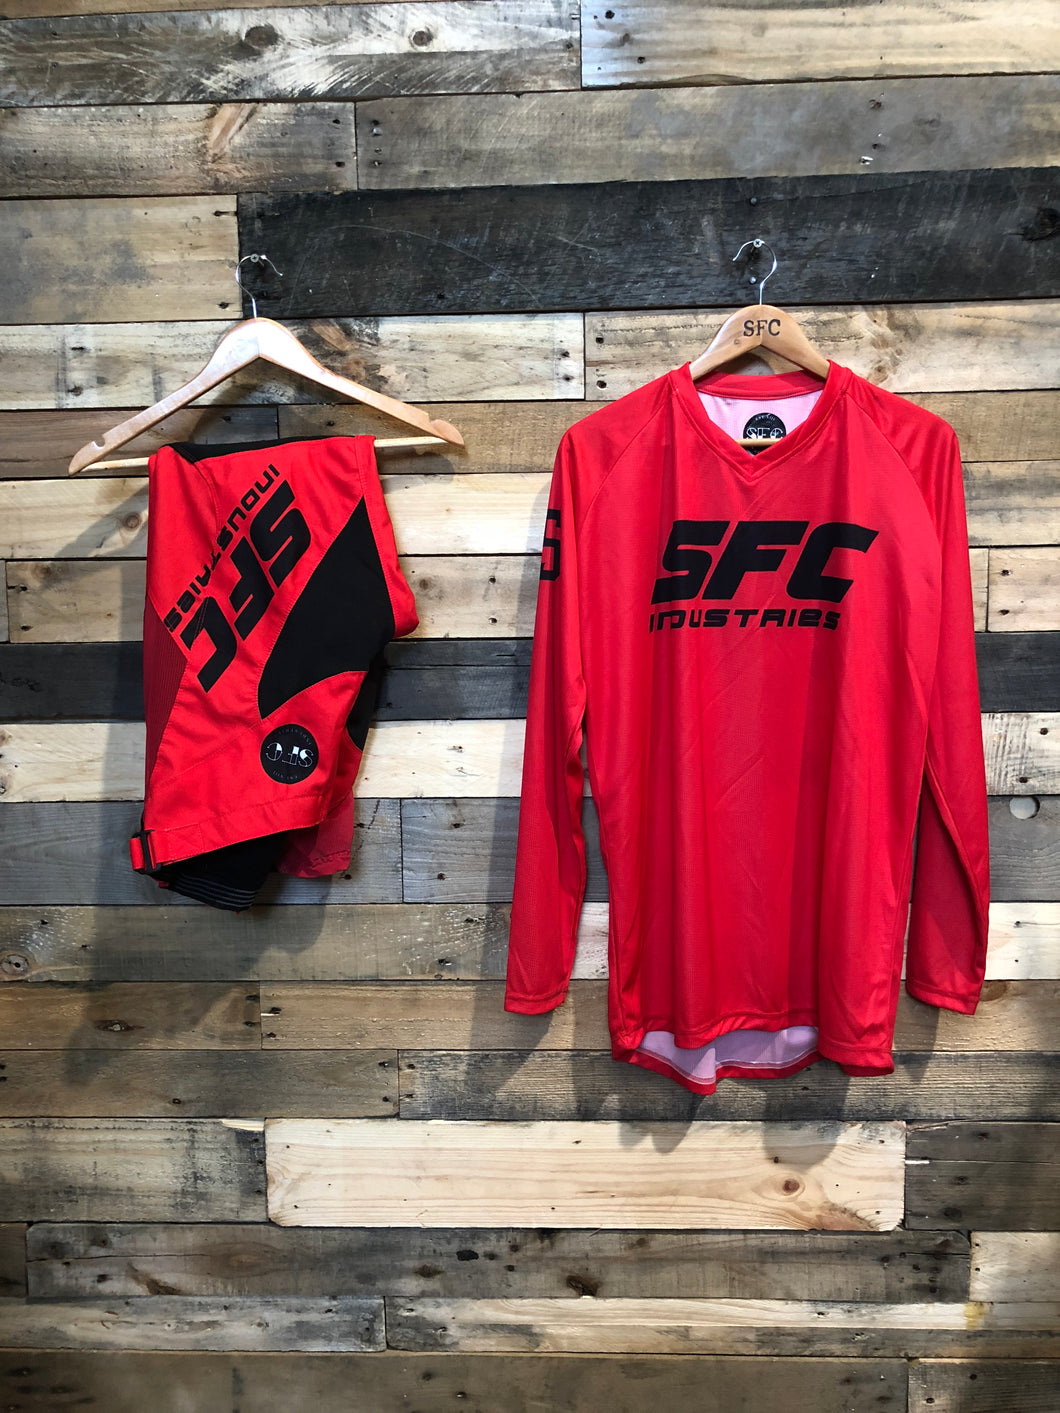 SFC INDUSTRIES RED ROSE MX JERSEY